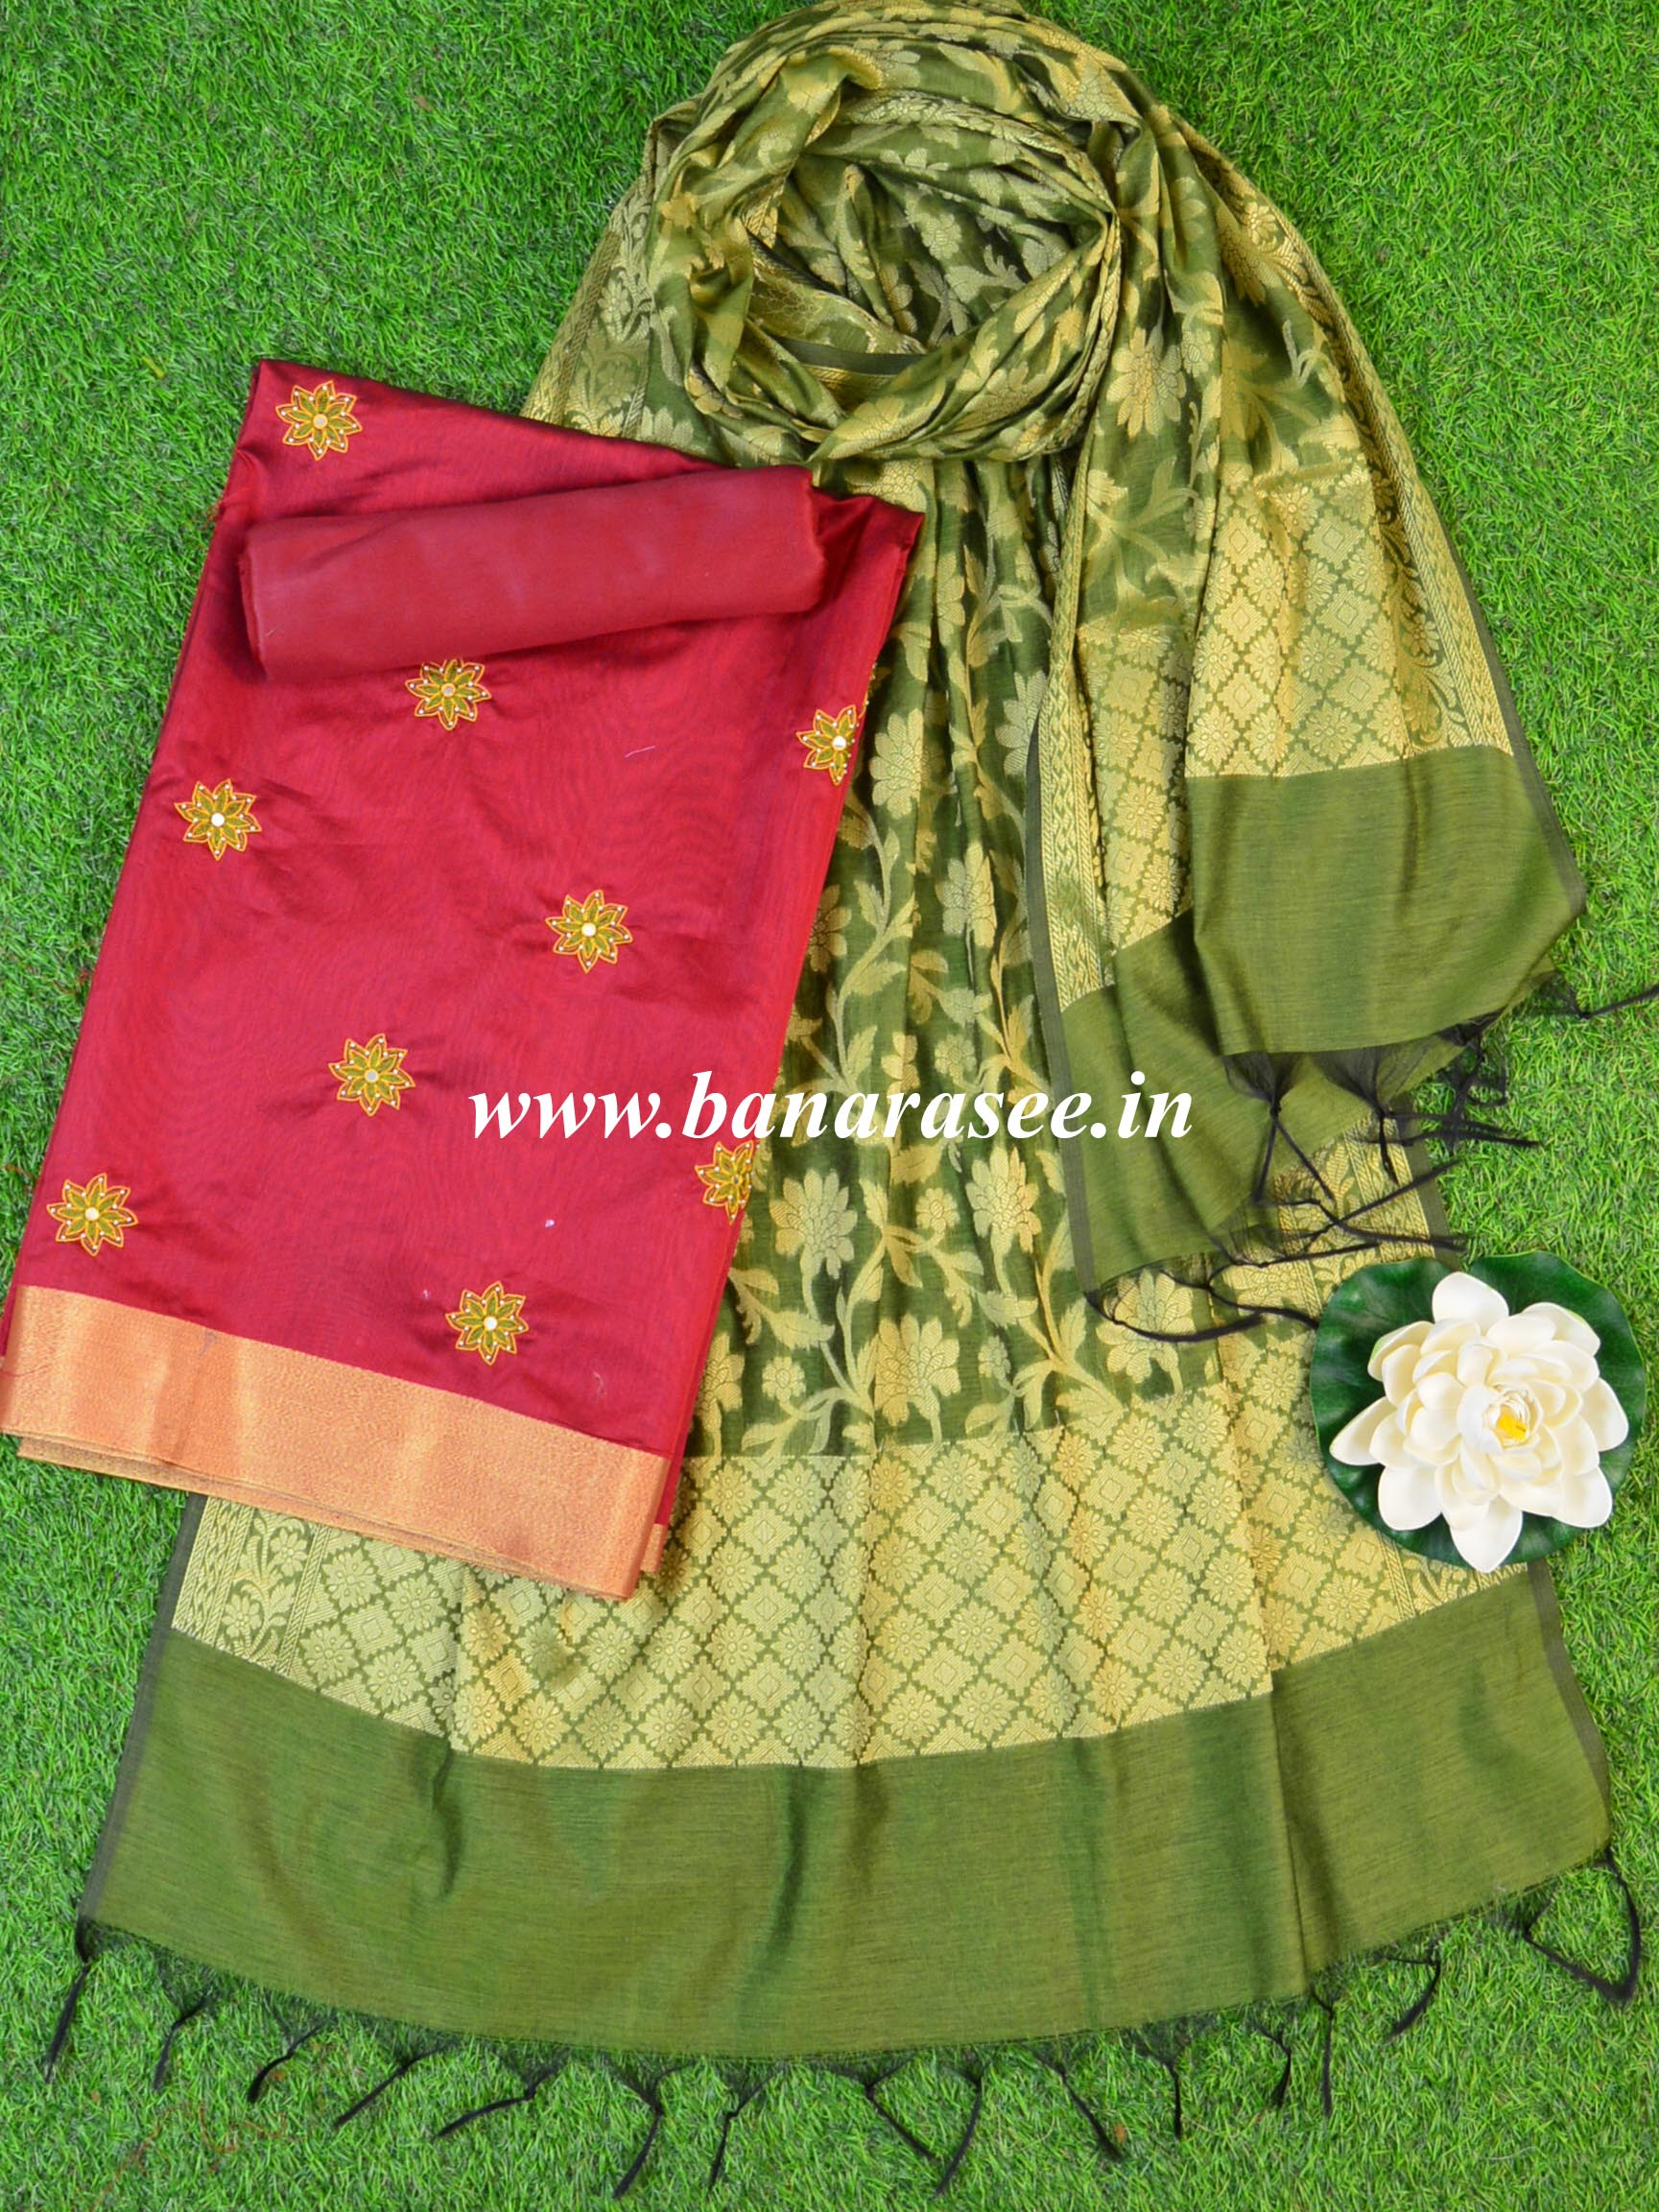 Banarasee Chanderi Cotton Mirror Work Salwar Kameez Dupatta Set-Maroon & Green